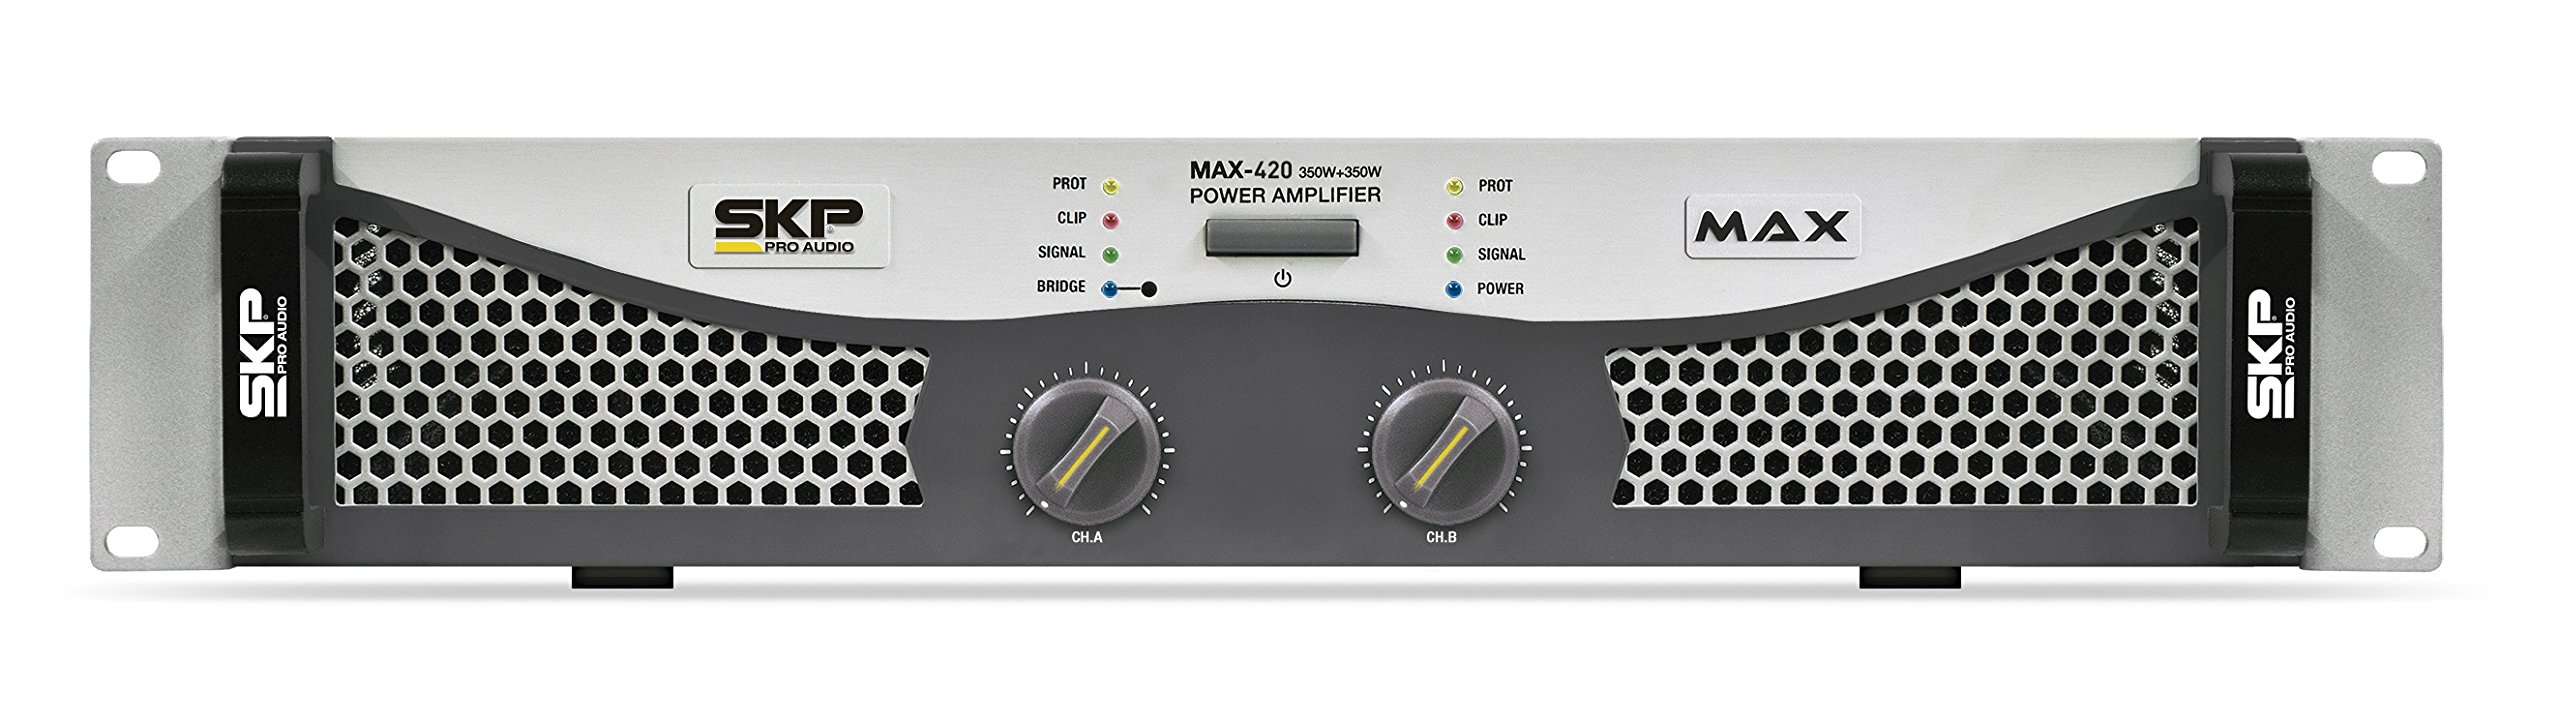 SKP Pro Audio Max-420 Stereo Output RMS Power 135 W Plus 135 W Powered Amplifier